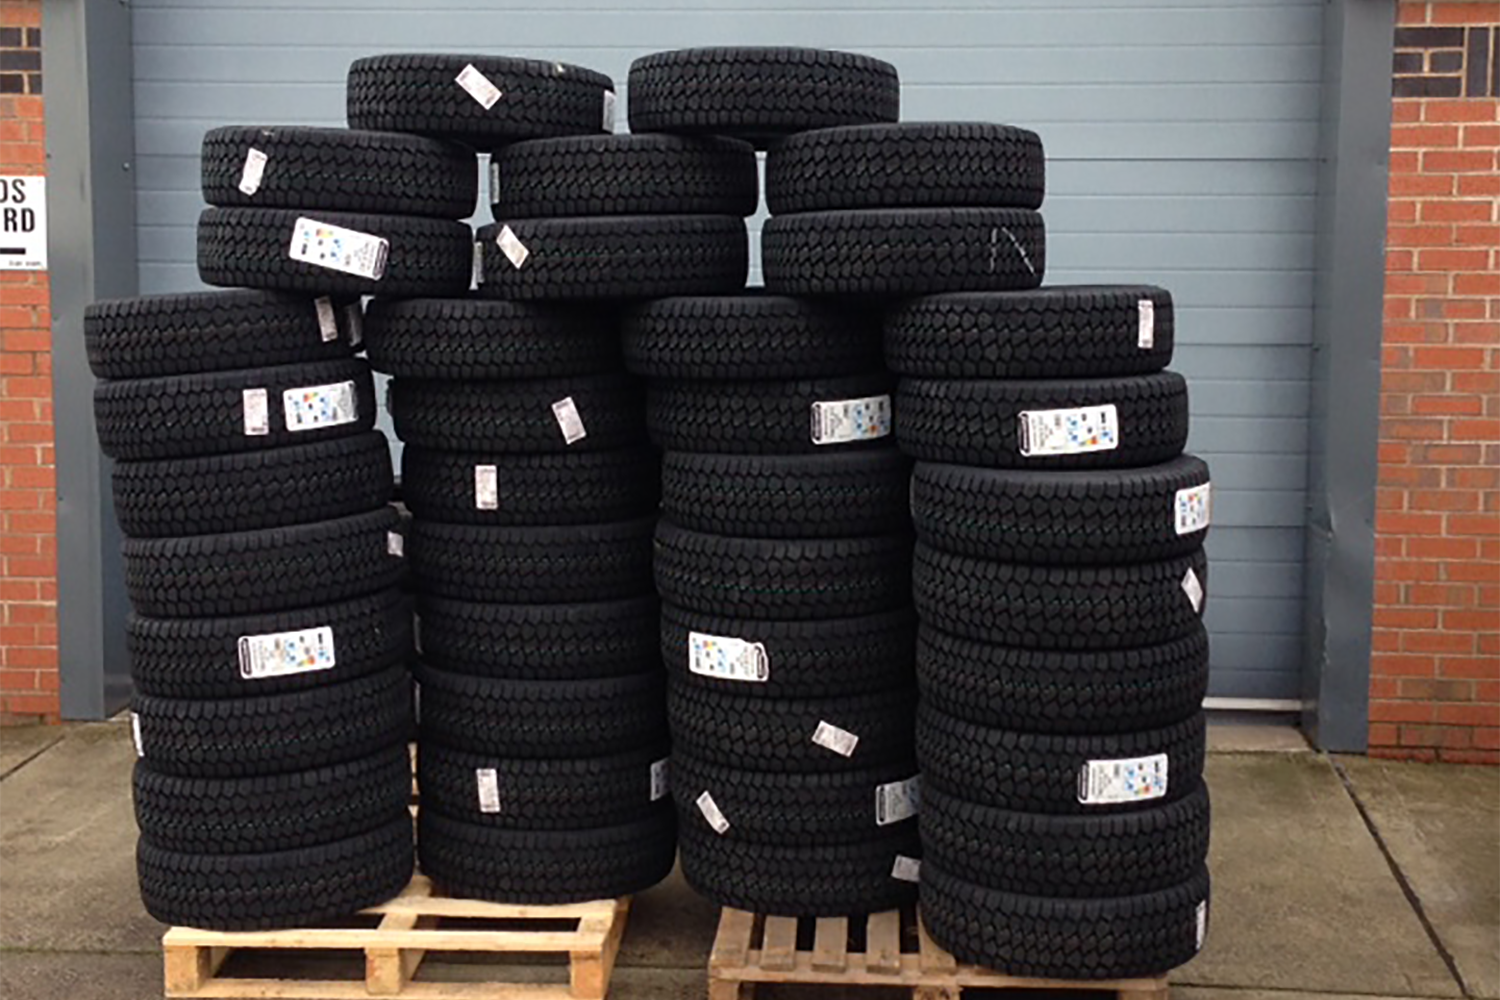 Stocking up on Winter Tyres